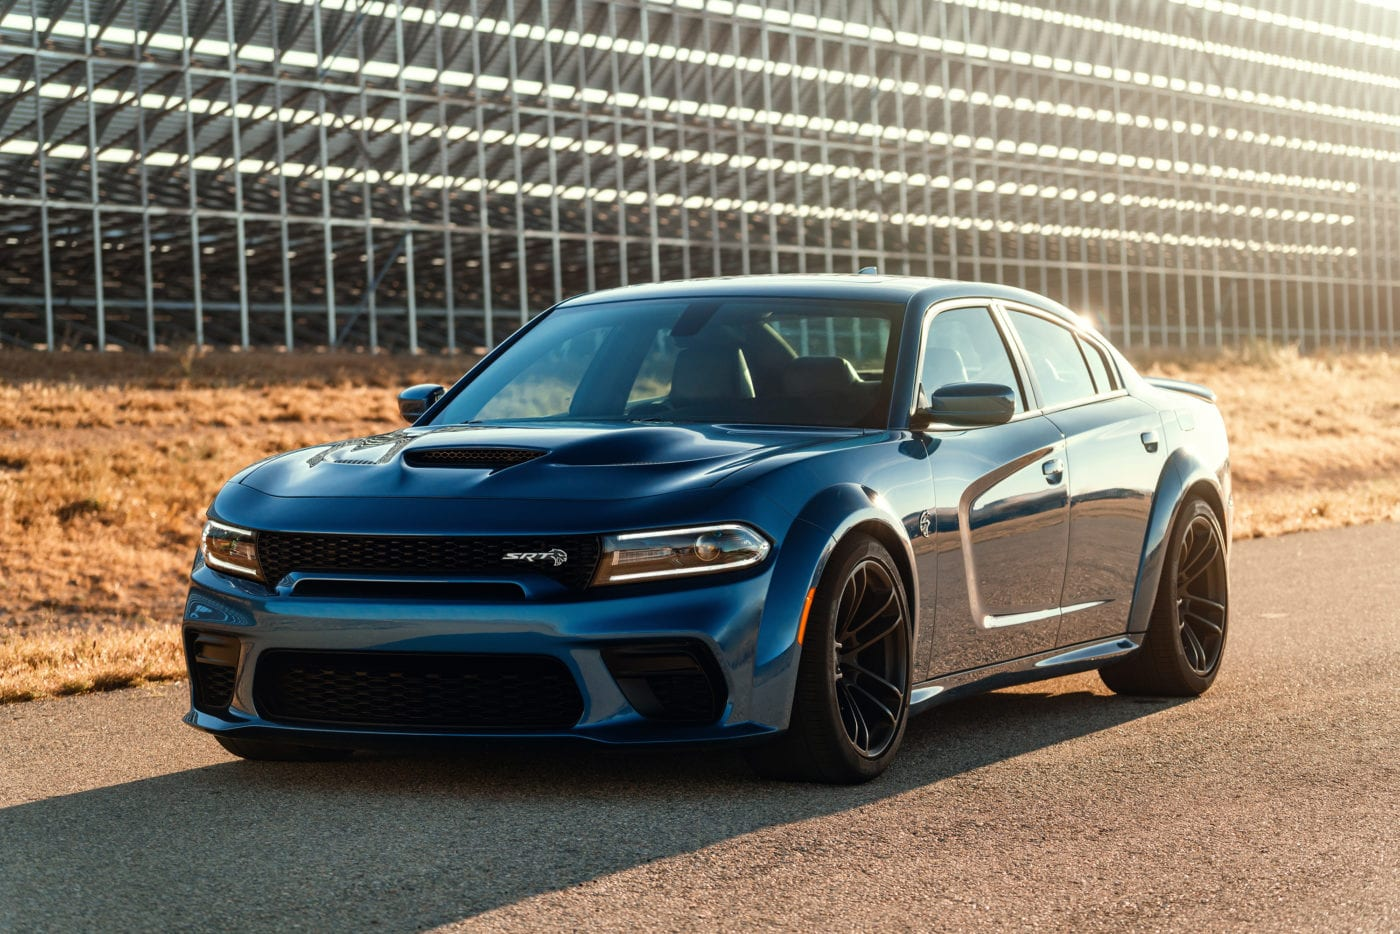 Dodge Charger Srt Hellcat Widebody Revealed